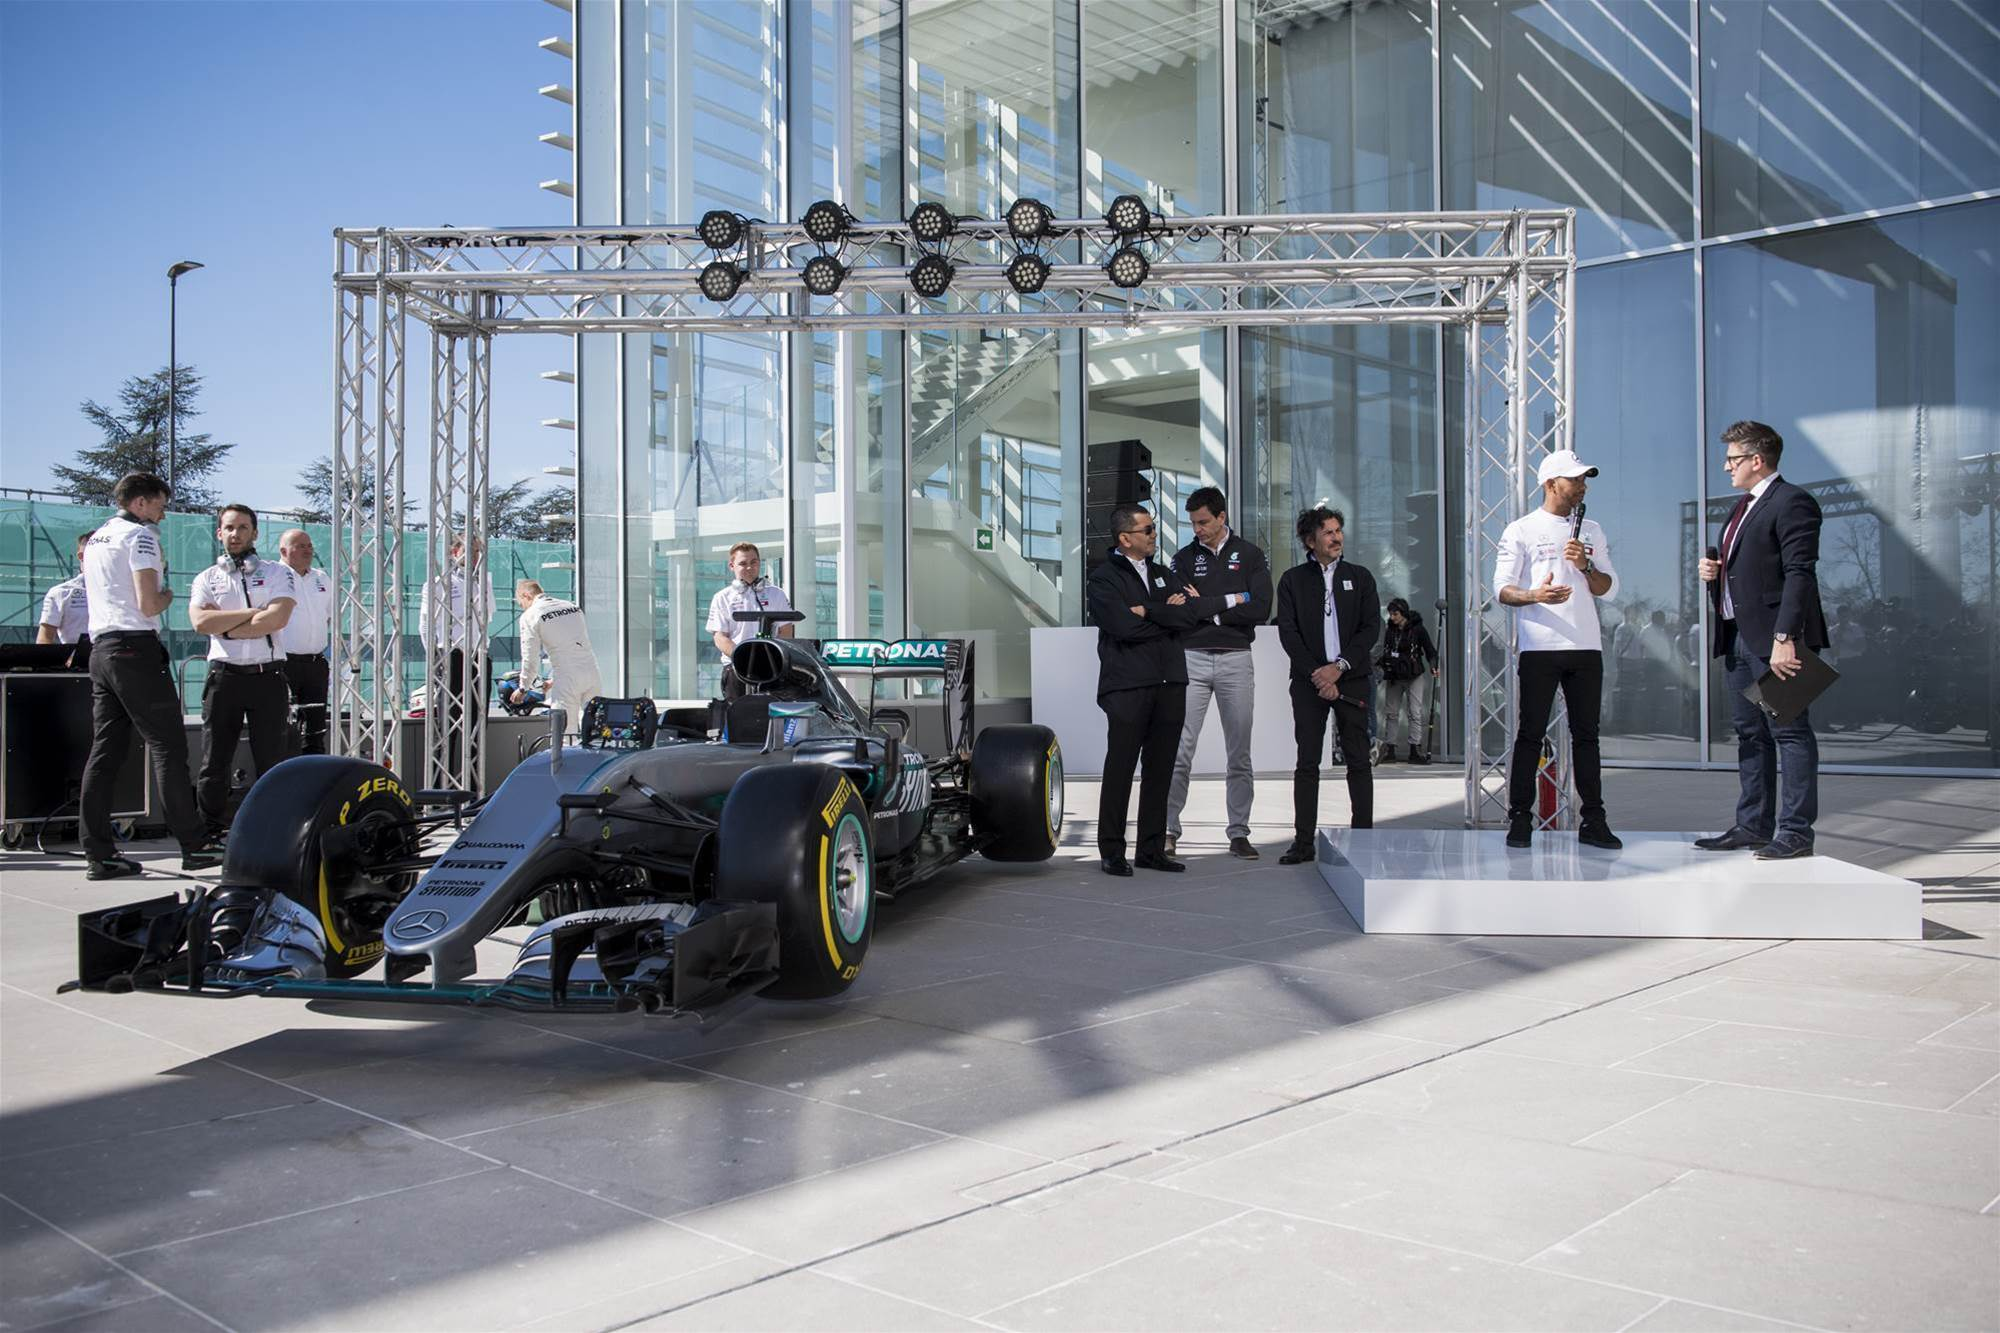 Hamilton worried about Red Bull threat